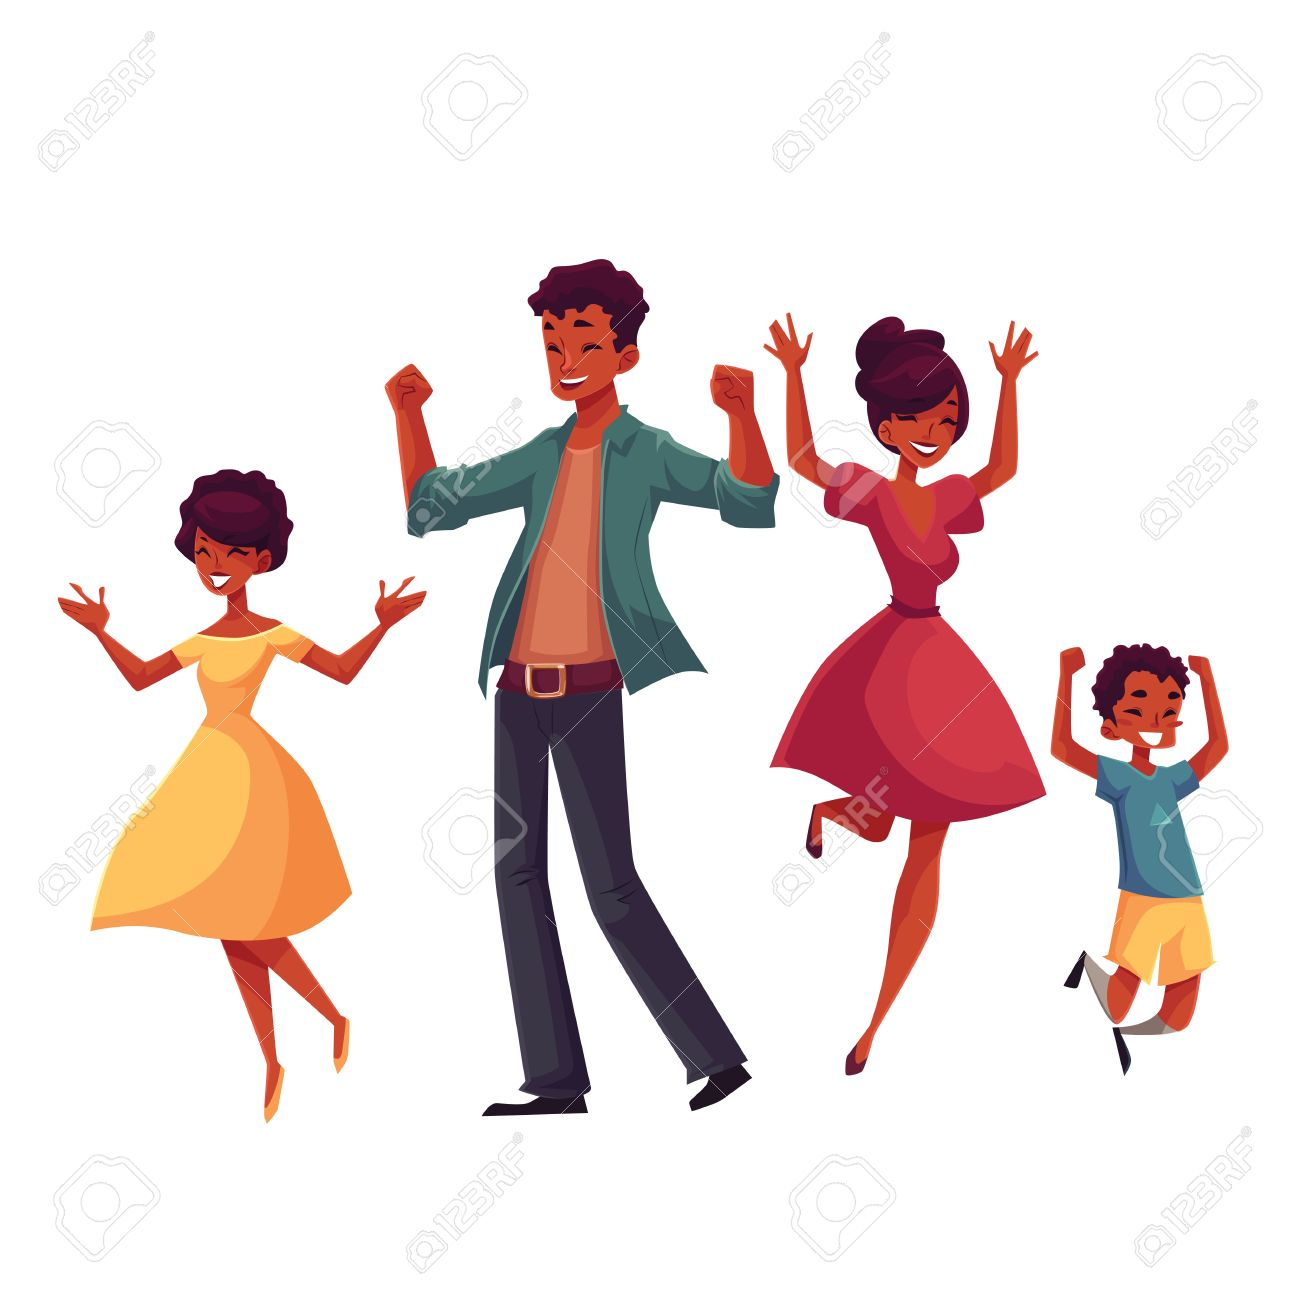 Cheerful Black Family Jumping From Happiness Cartoon Vector Royalty Free Cliparts Vectors And Stock Illustration Image 67895699